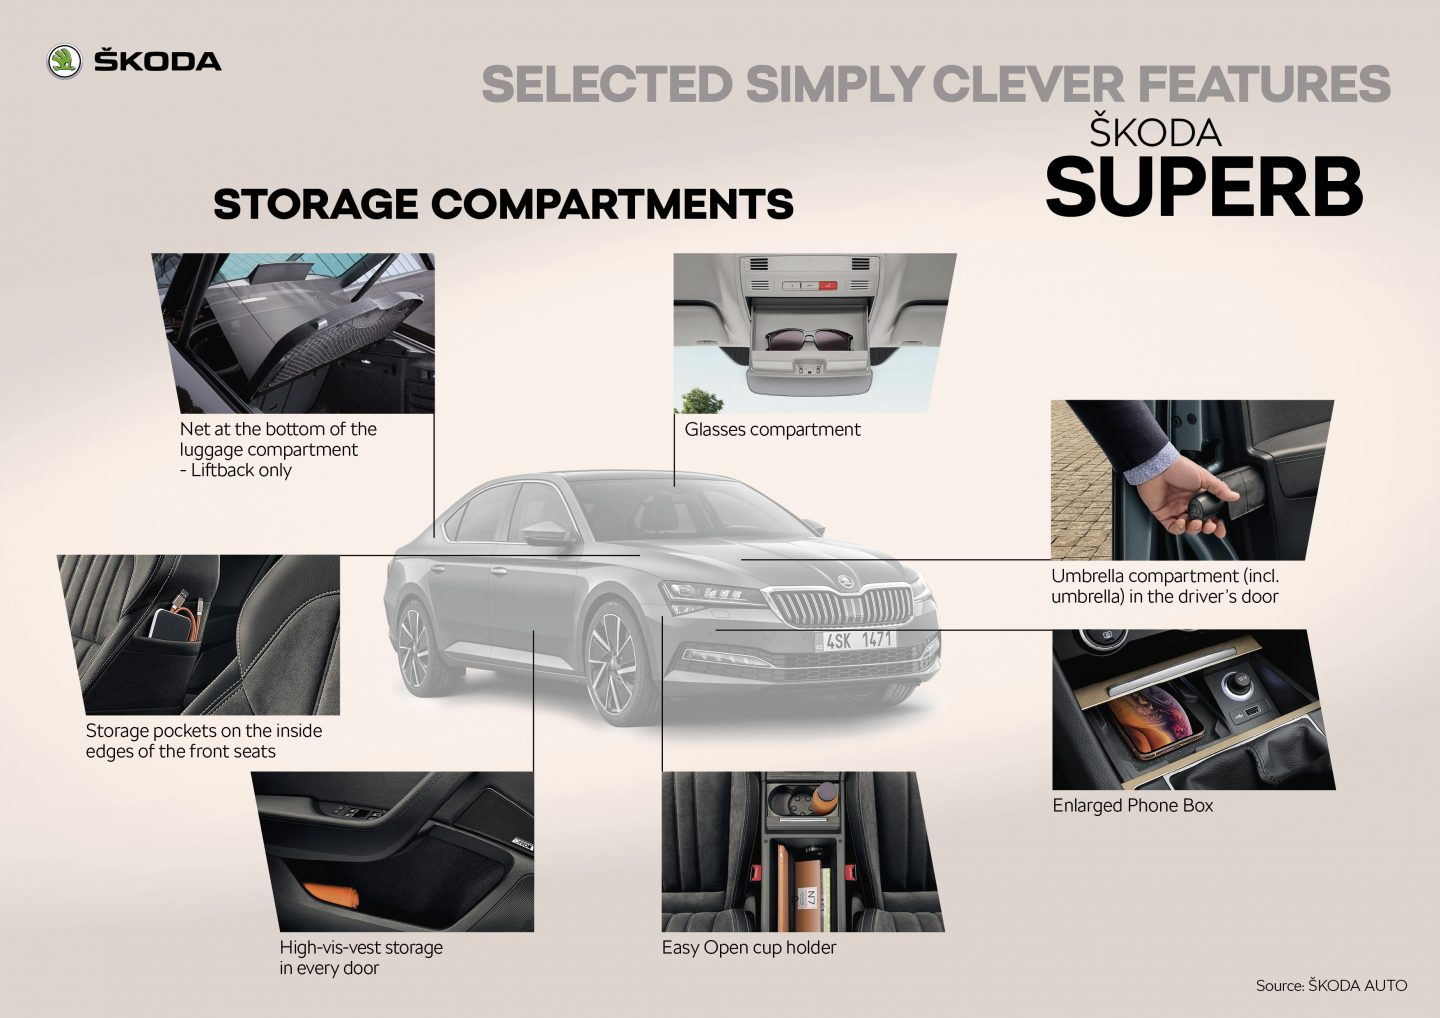 ŠKODA SUPERB Selected Simply Clever Features - storage compartments